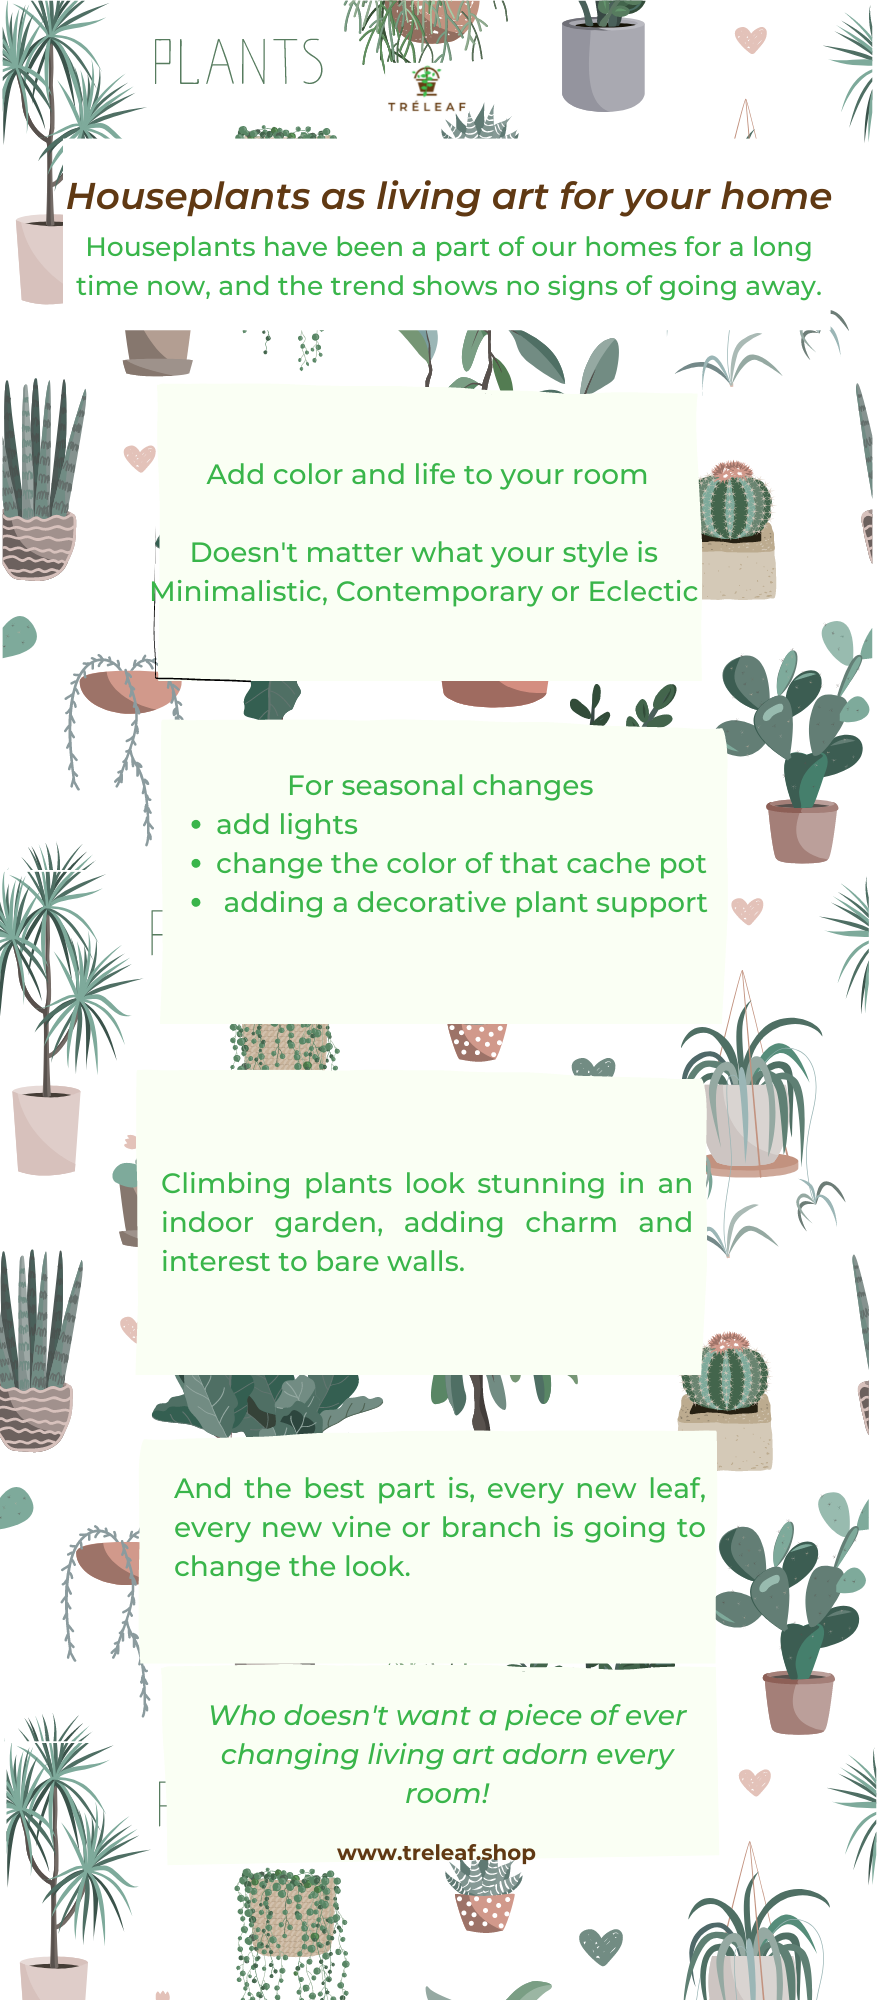 infographic about houseplants as living art for your home